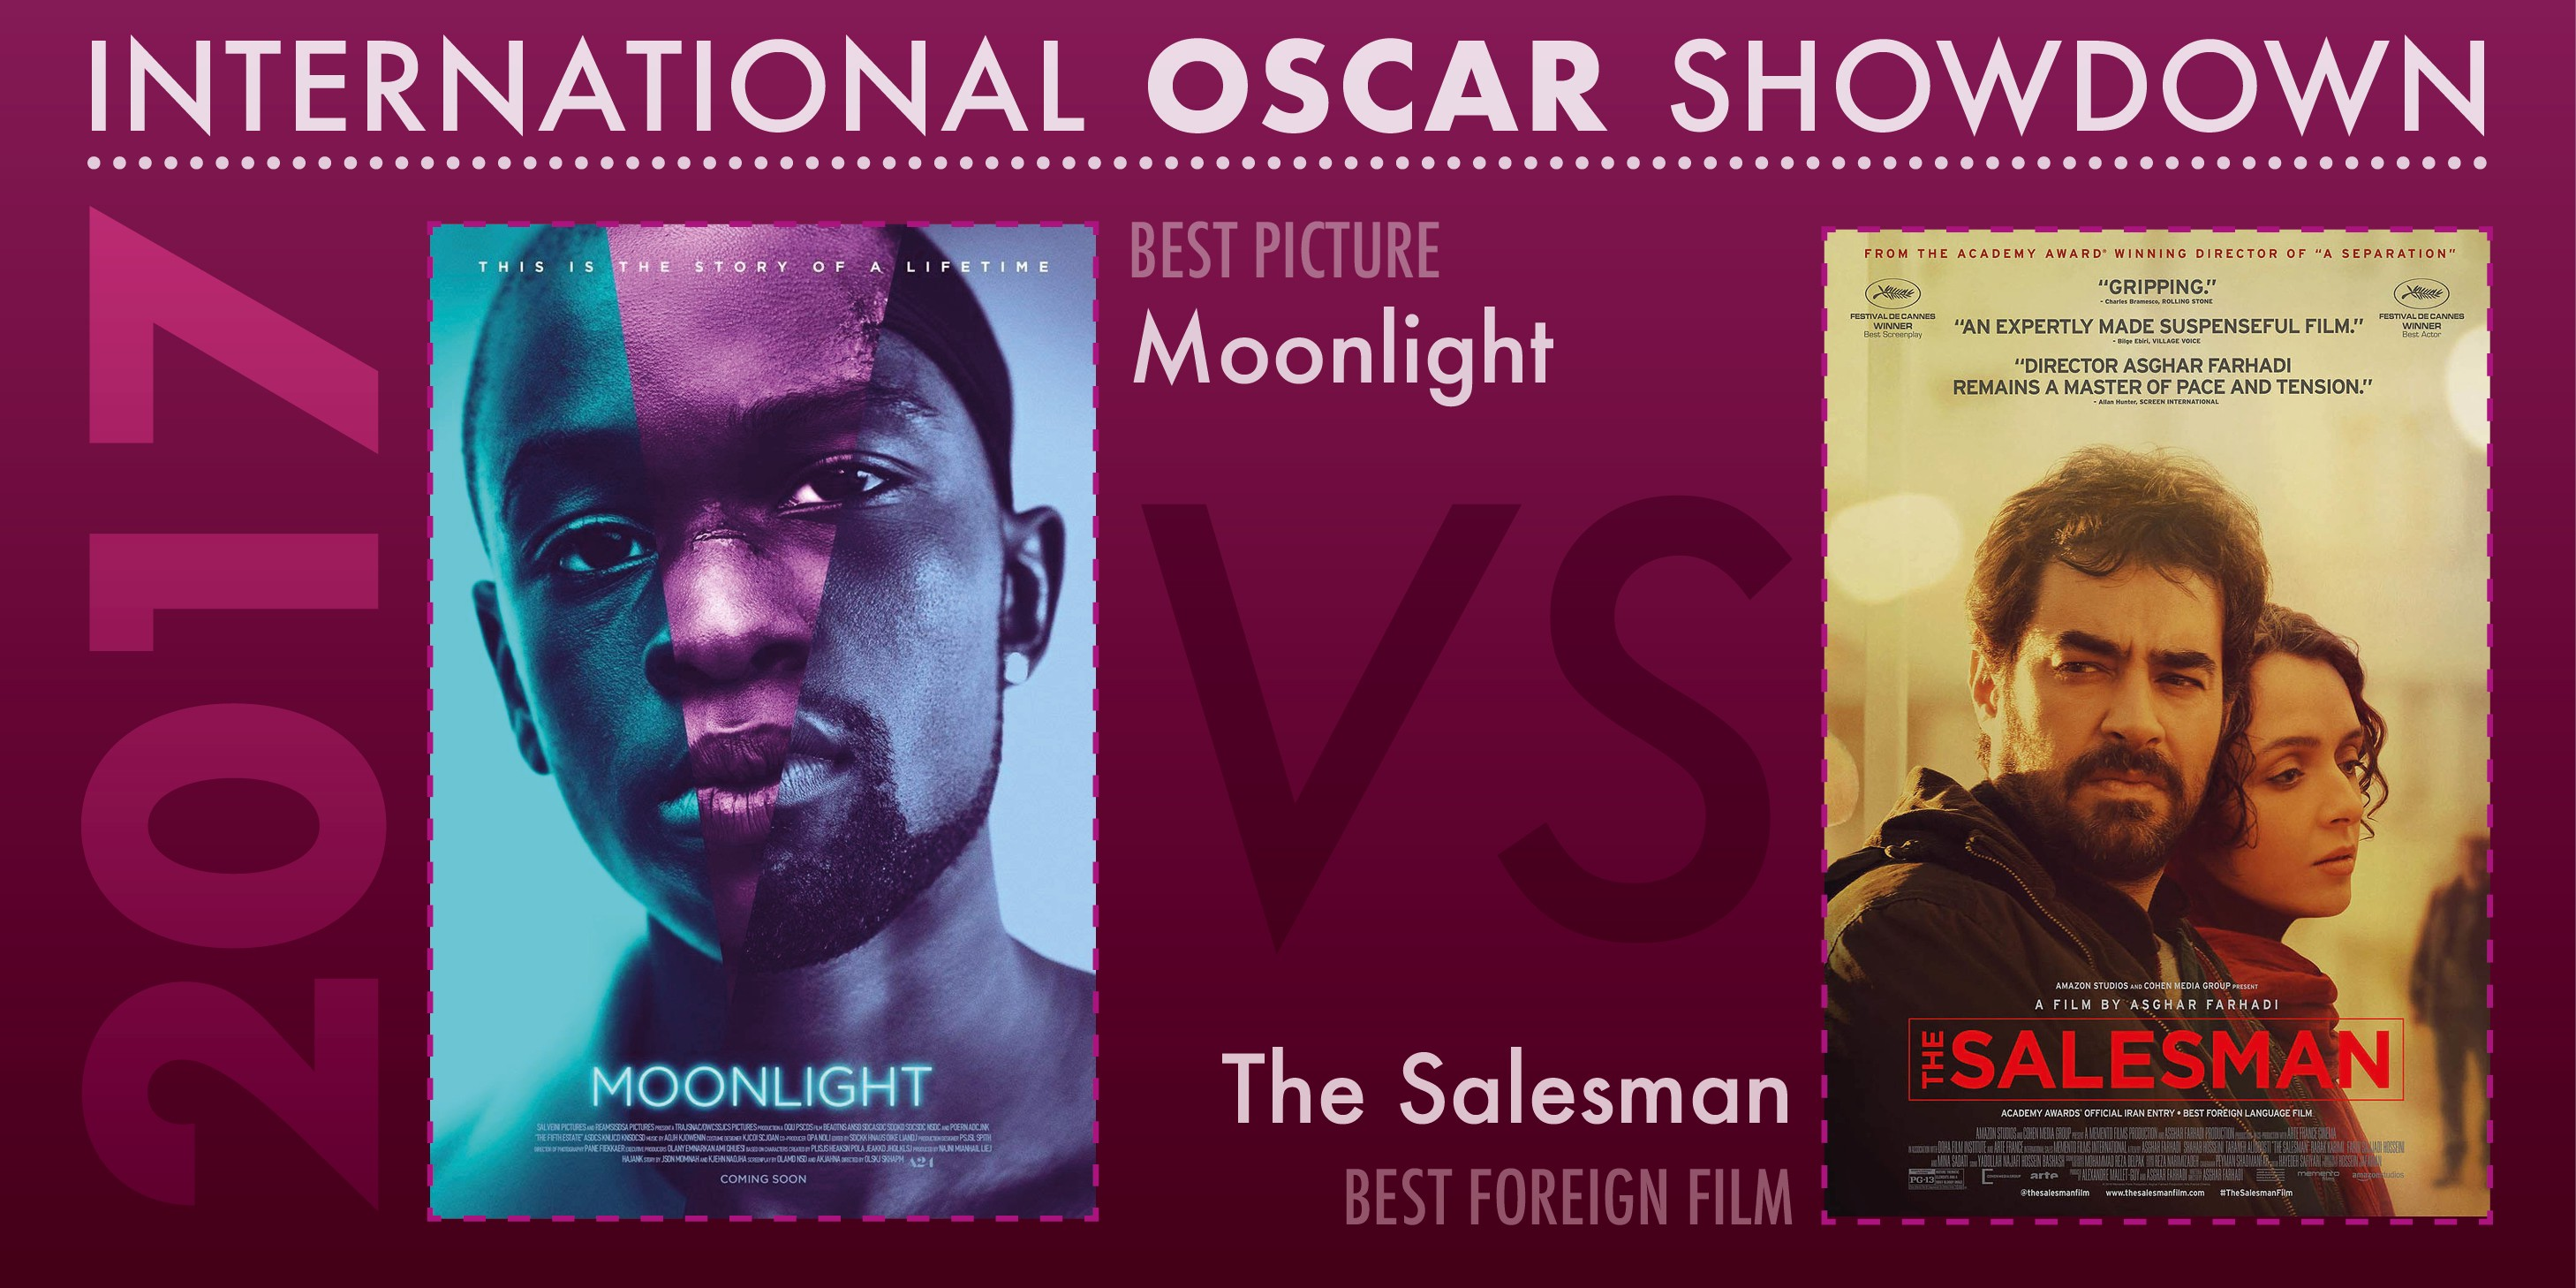 The 89th Academy Awards winners for Best Picture and Best International Feature Film were Moonlight and The Salesman